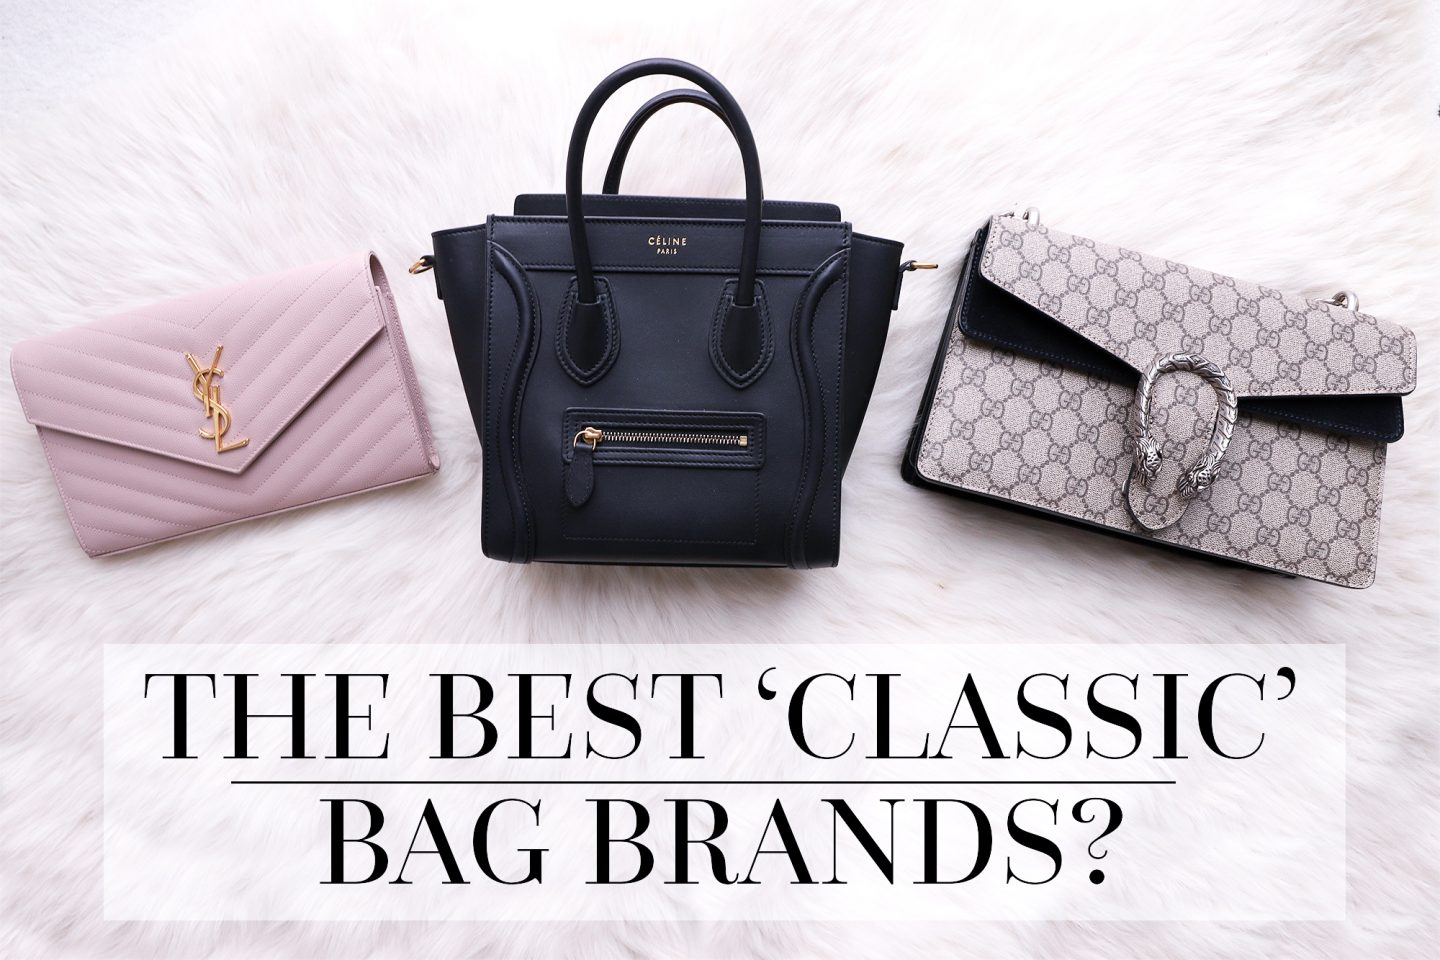 354d605dc9a0 It s not a secret that my favourite luxury brand is Chanel. I ve loved  Chanel s aesthetic for far longer than I ve been able to afford it and I  can t ...